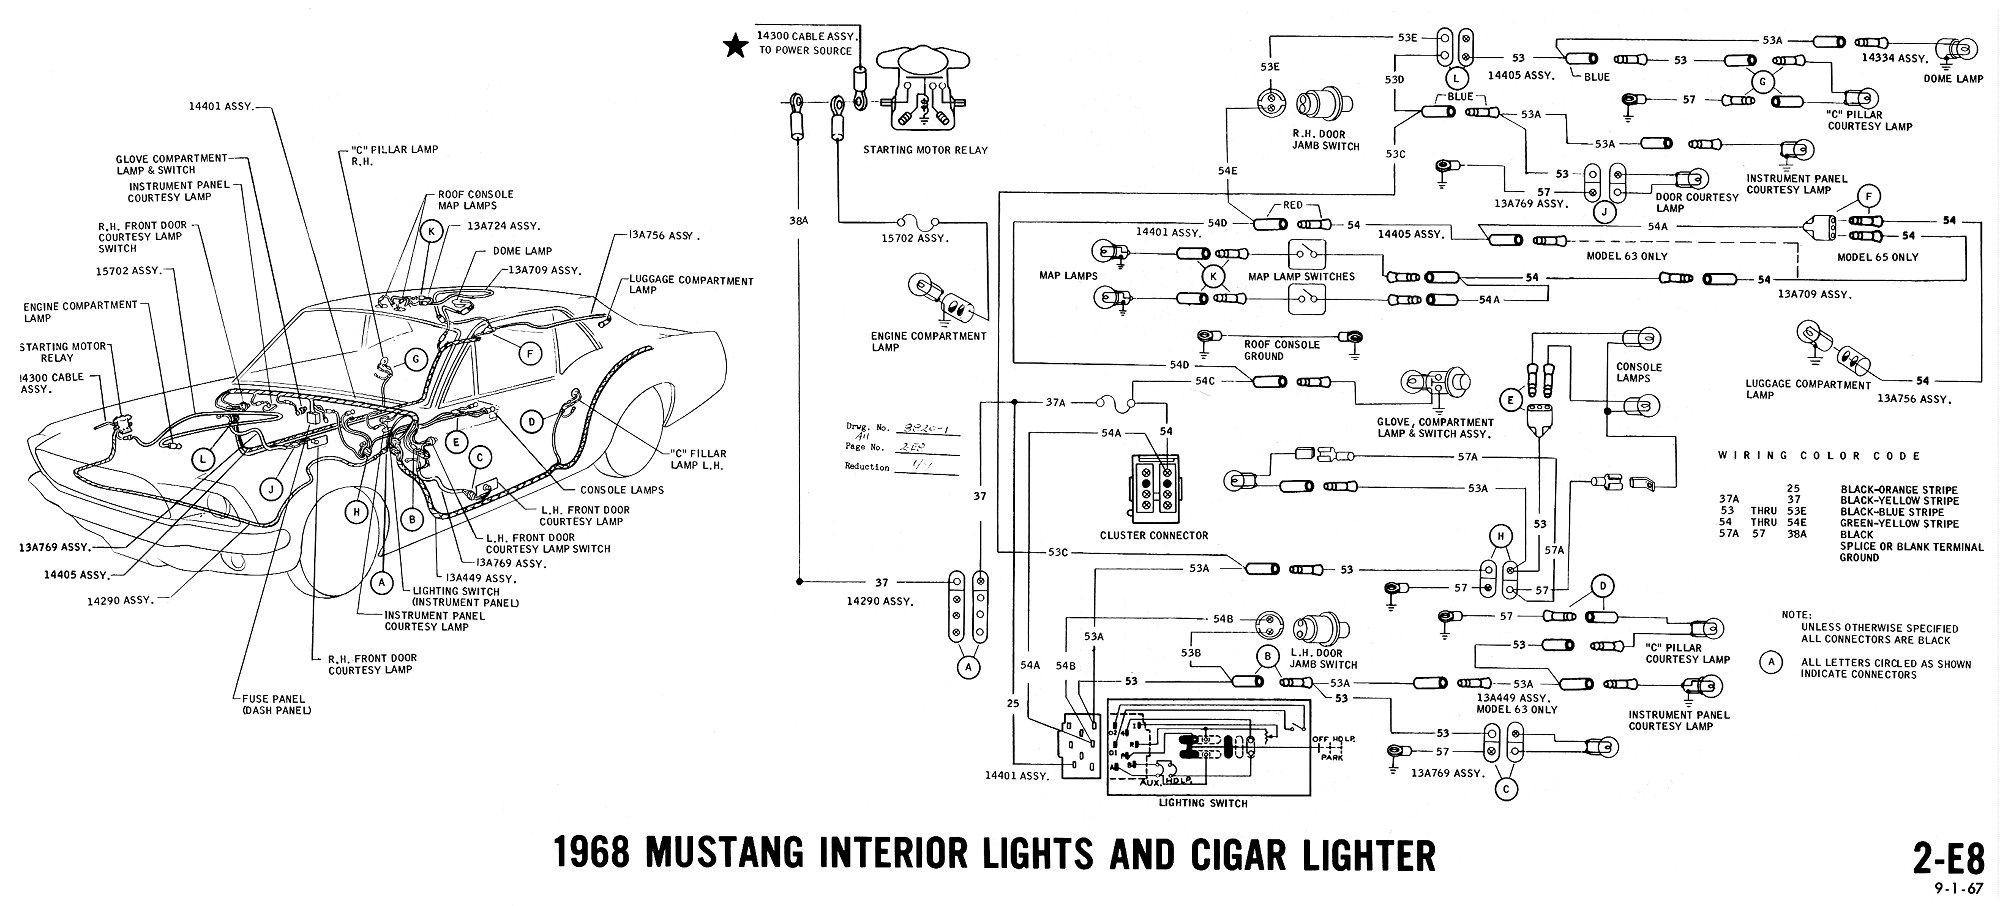 1966 ford mustang wiring wiring diagram hub 1969 Mustang Ignition Wiring 1968 ford mustang wiring harness diagram wiring diagram data schema 1968 ford mustang wiring diagram 1966 ford mustang wiring